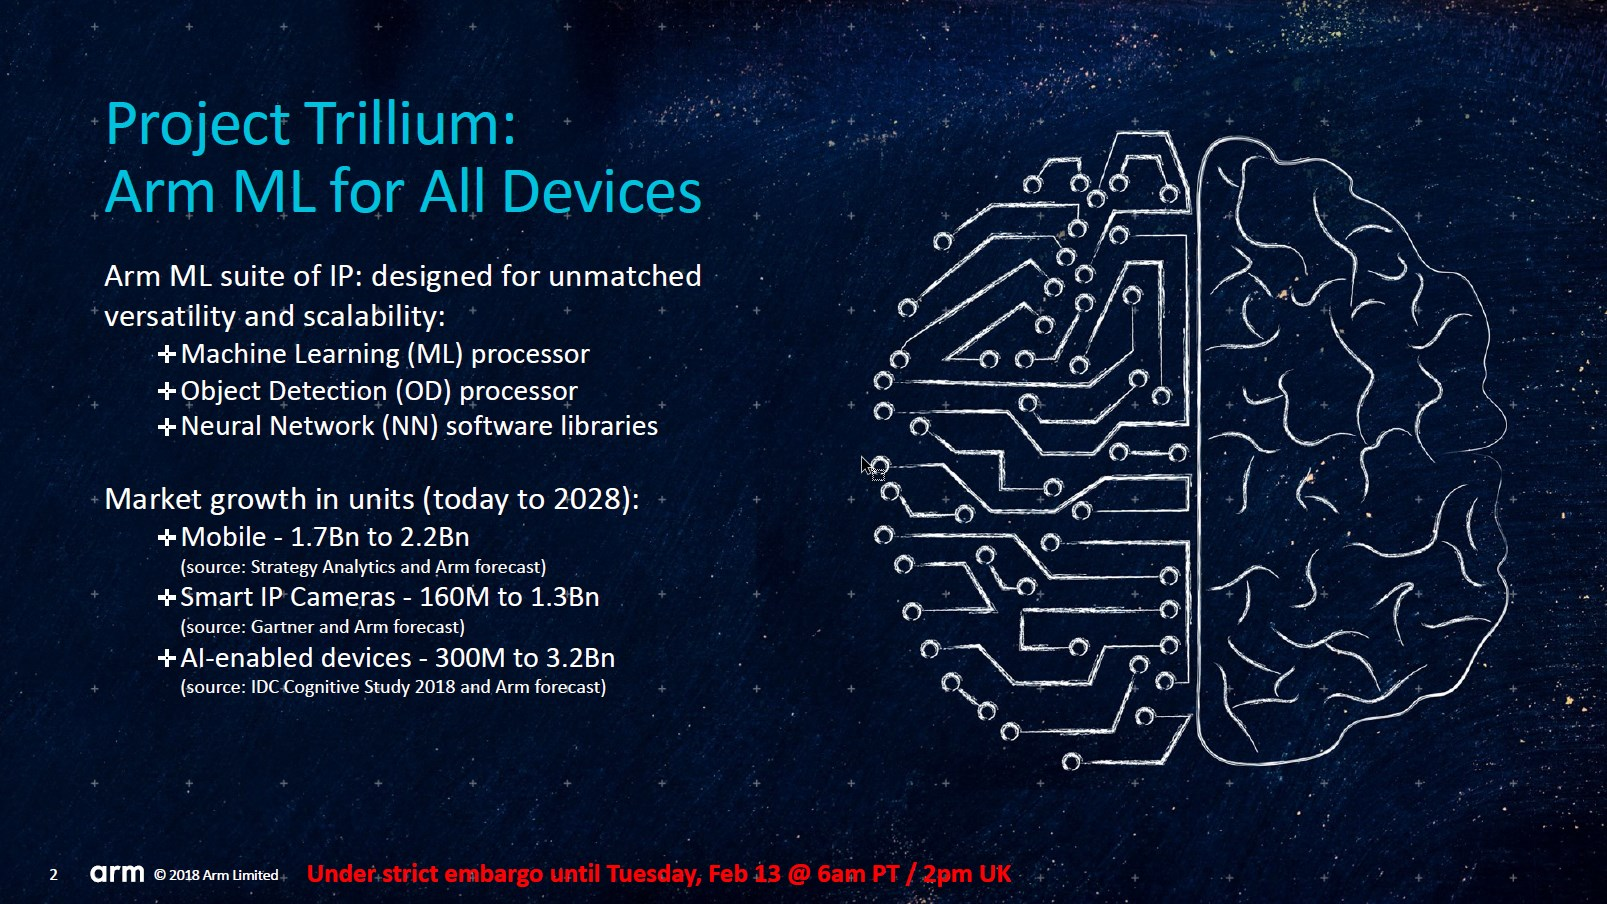 arm project Project trillium is a new class of highly-scalable processors from arm, designed specifically for machine learning and neural networks capabilities.